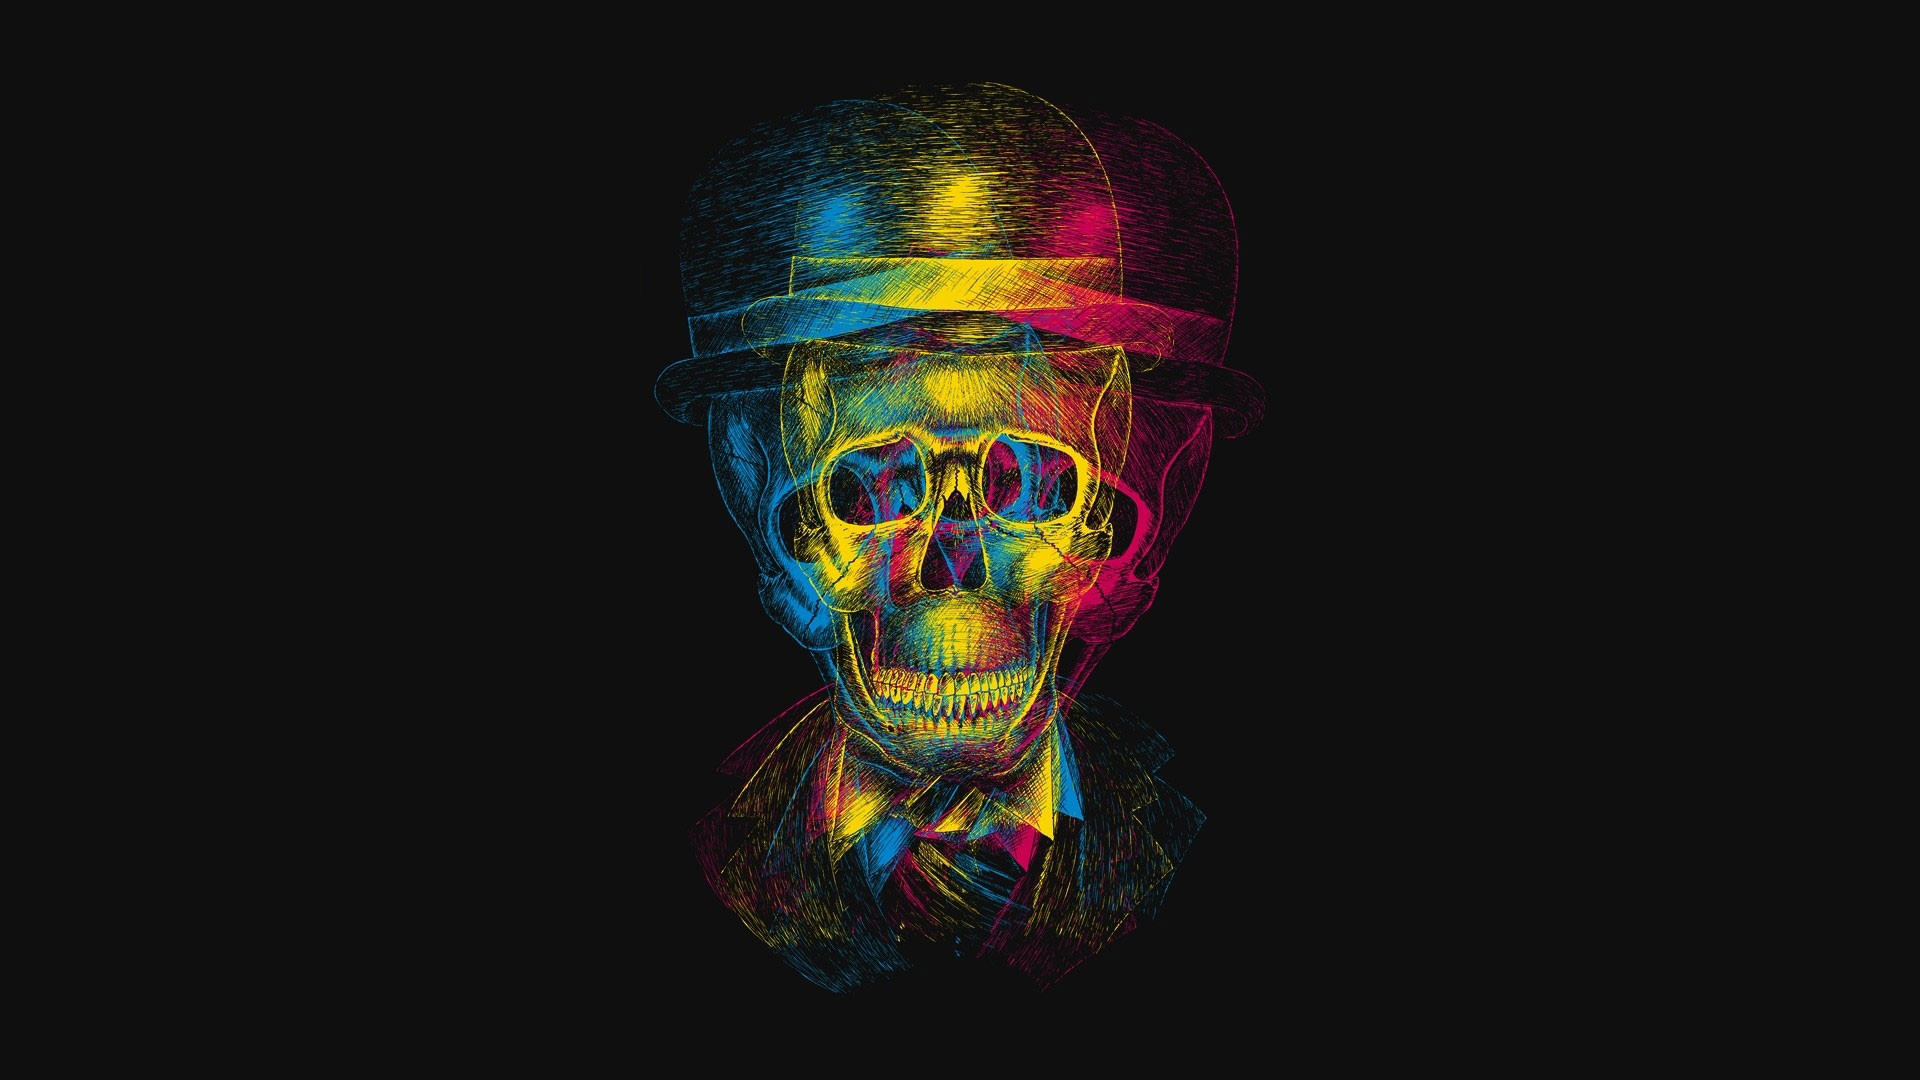 1920x1080 hd pics photos best skull danger color pencil drawing multi colored hd  quality desktop background wallpaper